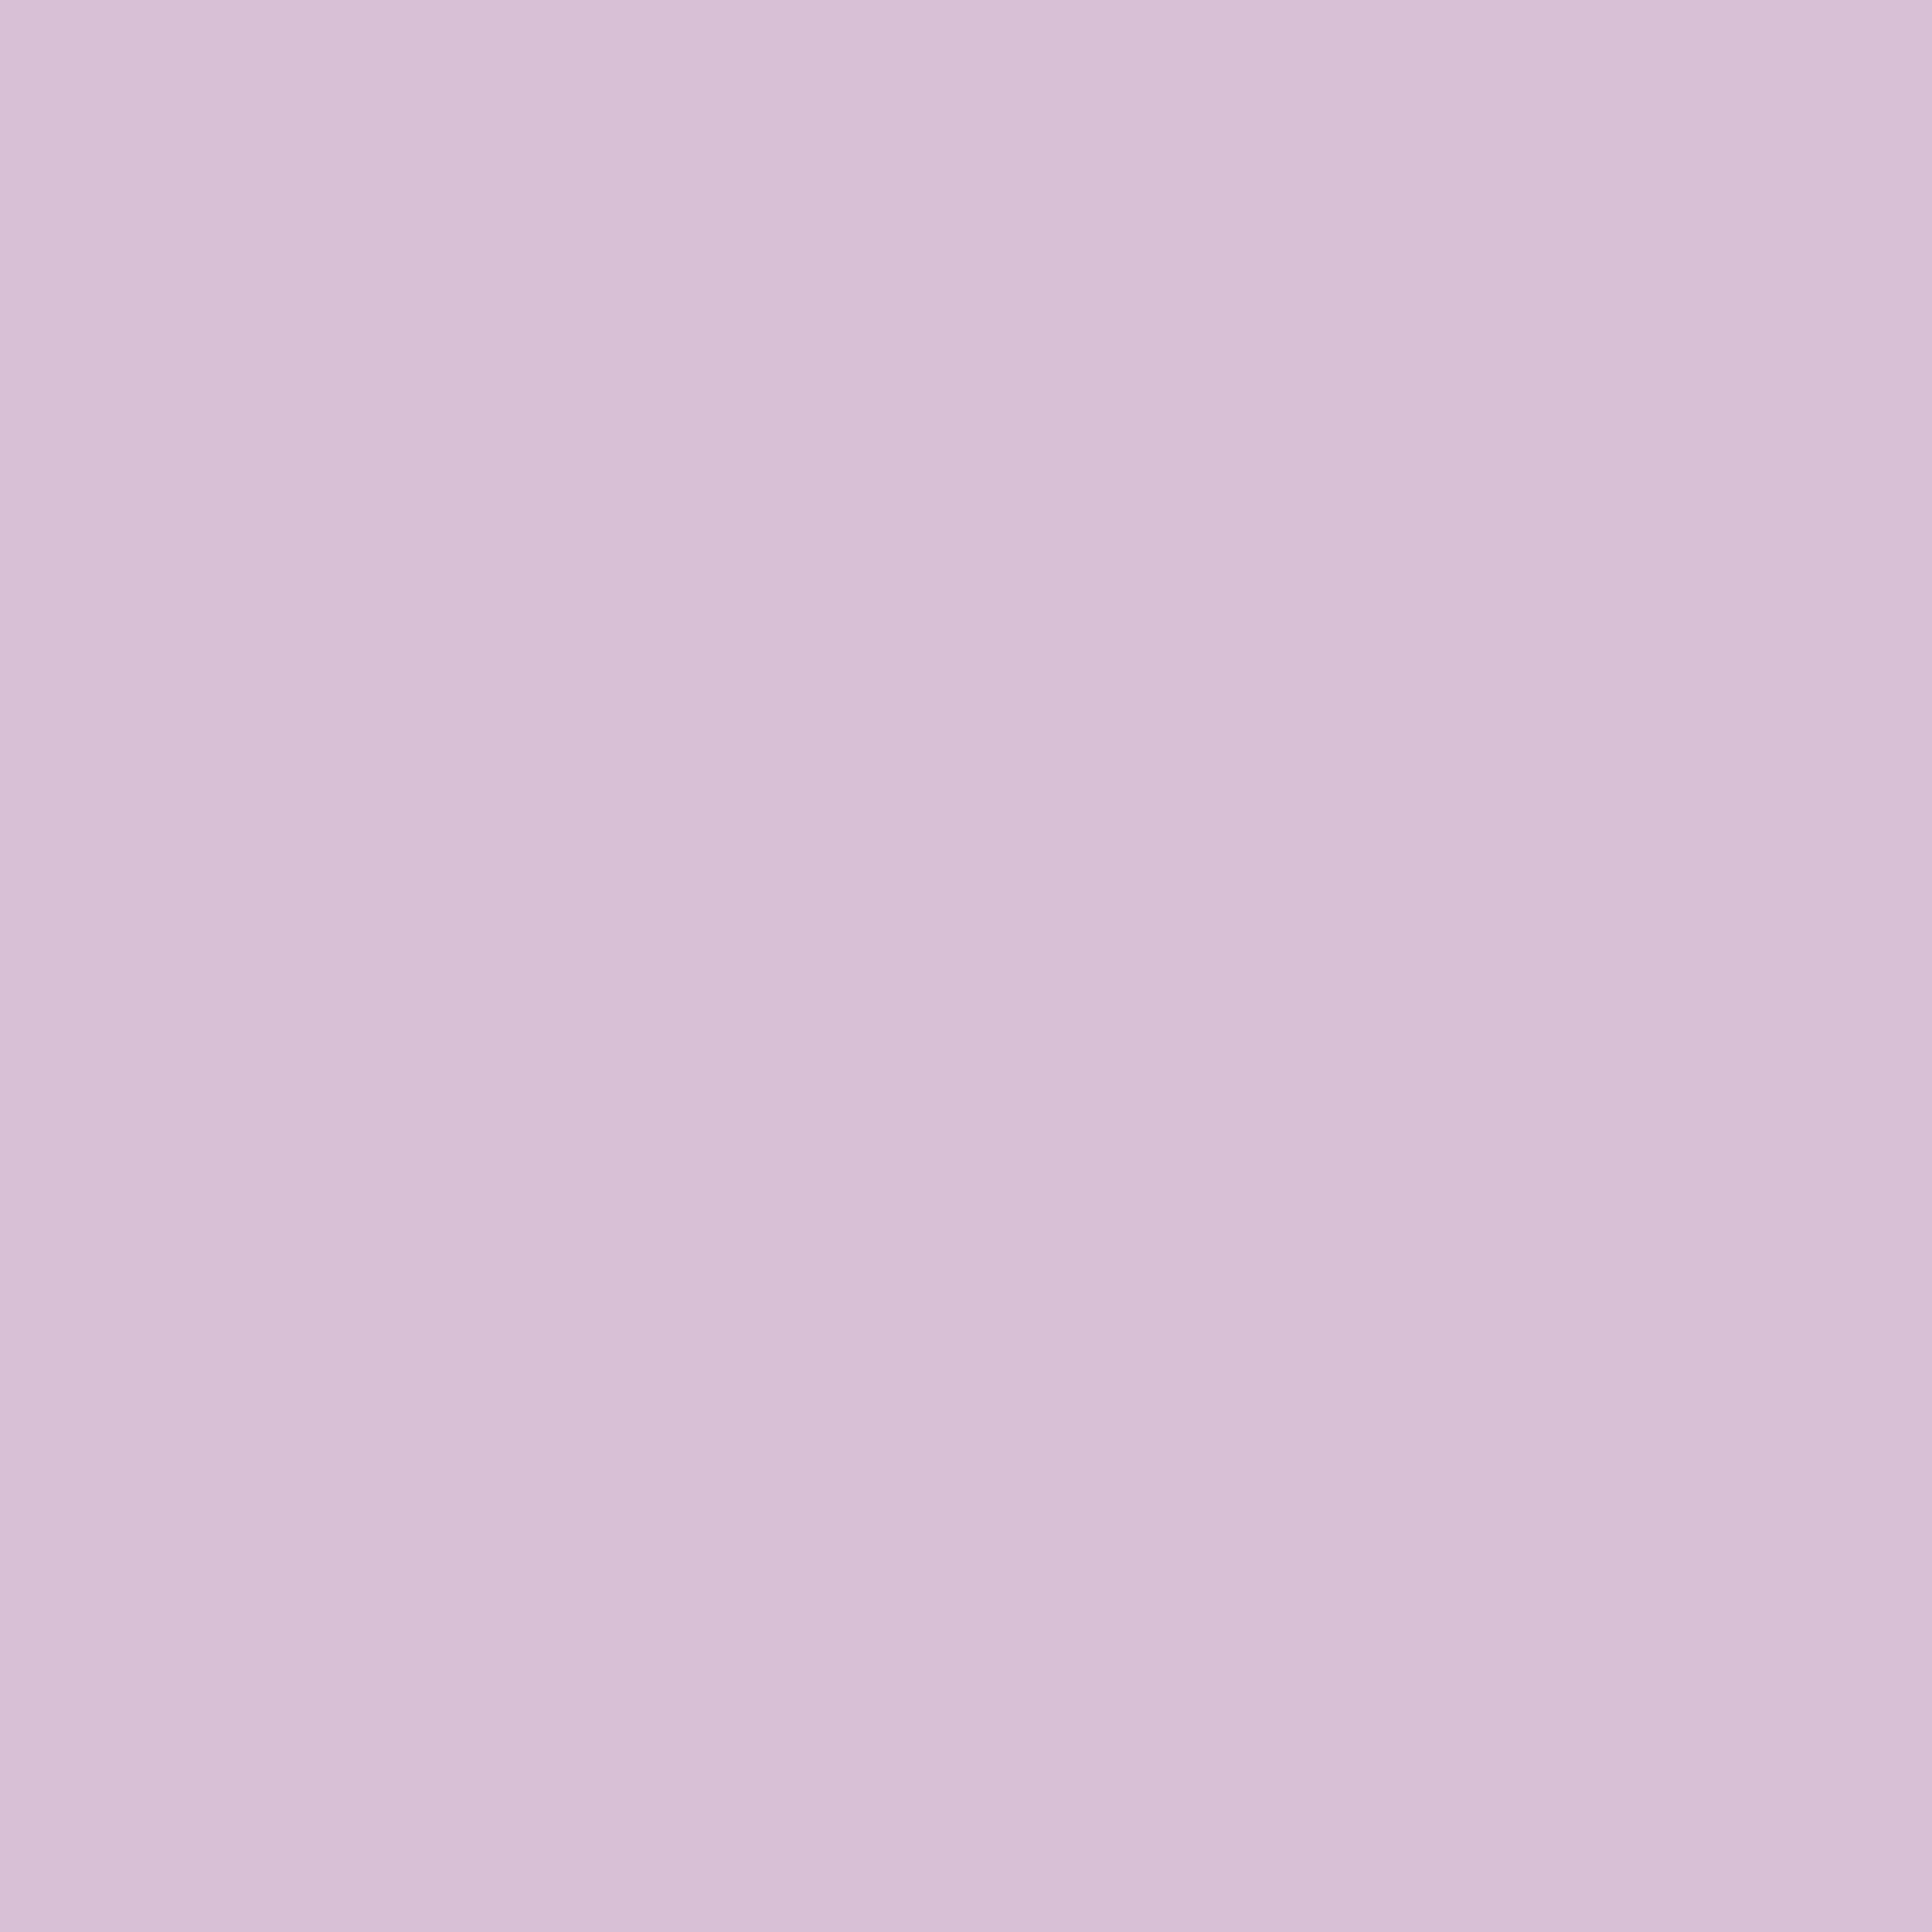 2048x2048 Thistle Solid Color Background